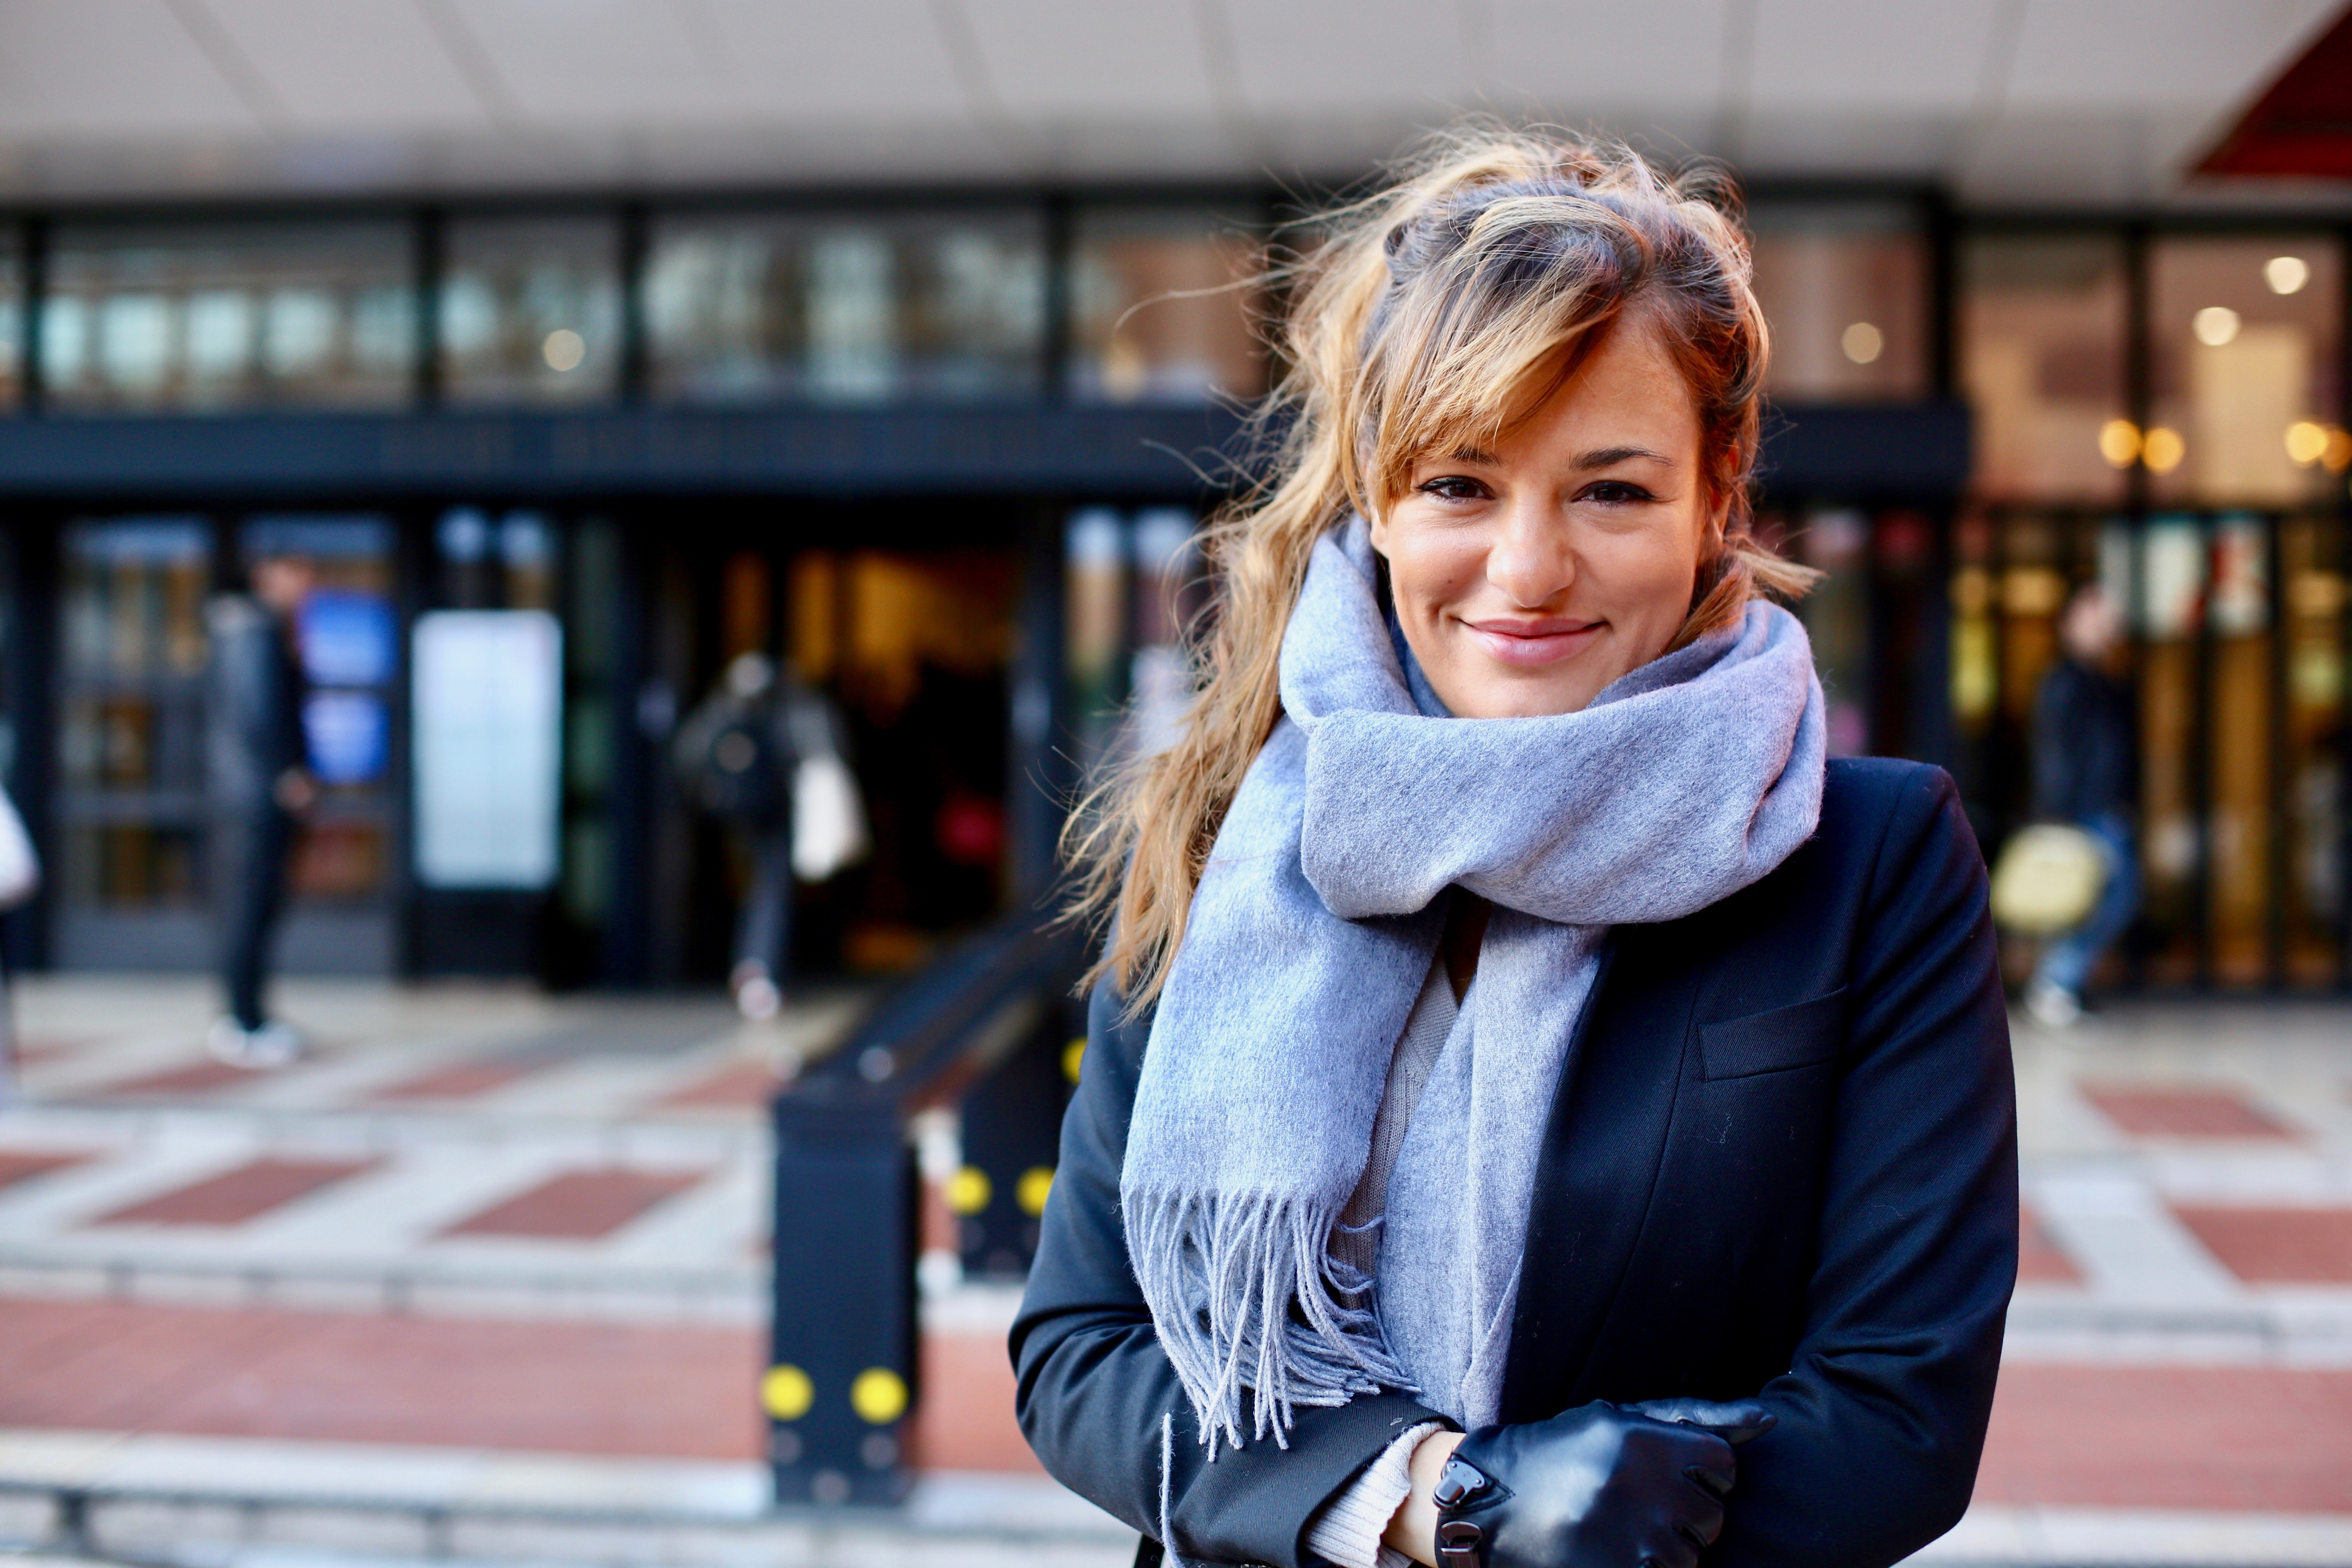 Nicola Benedetti at the British Library